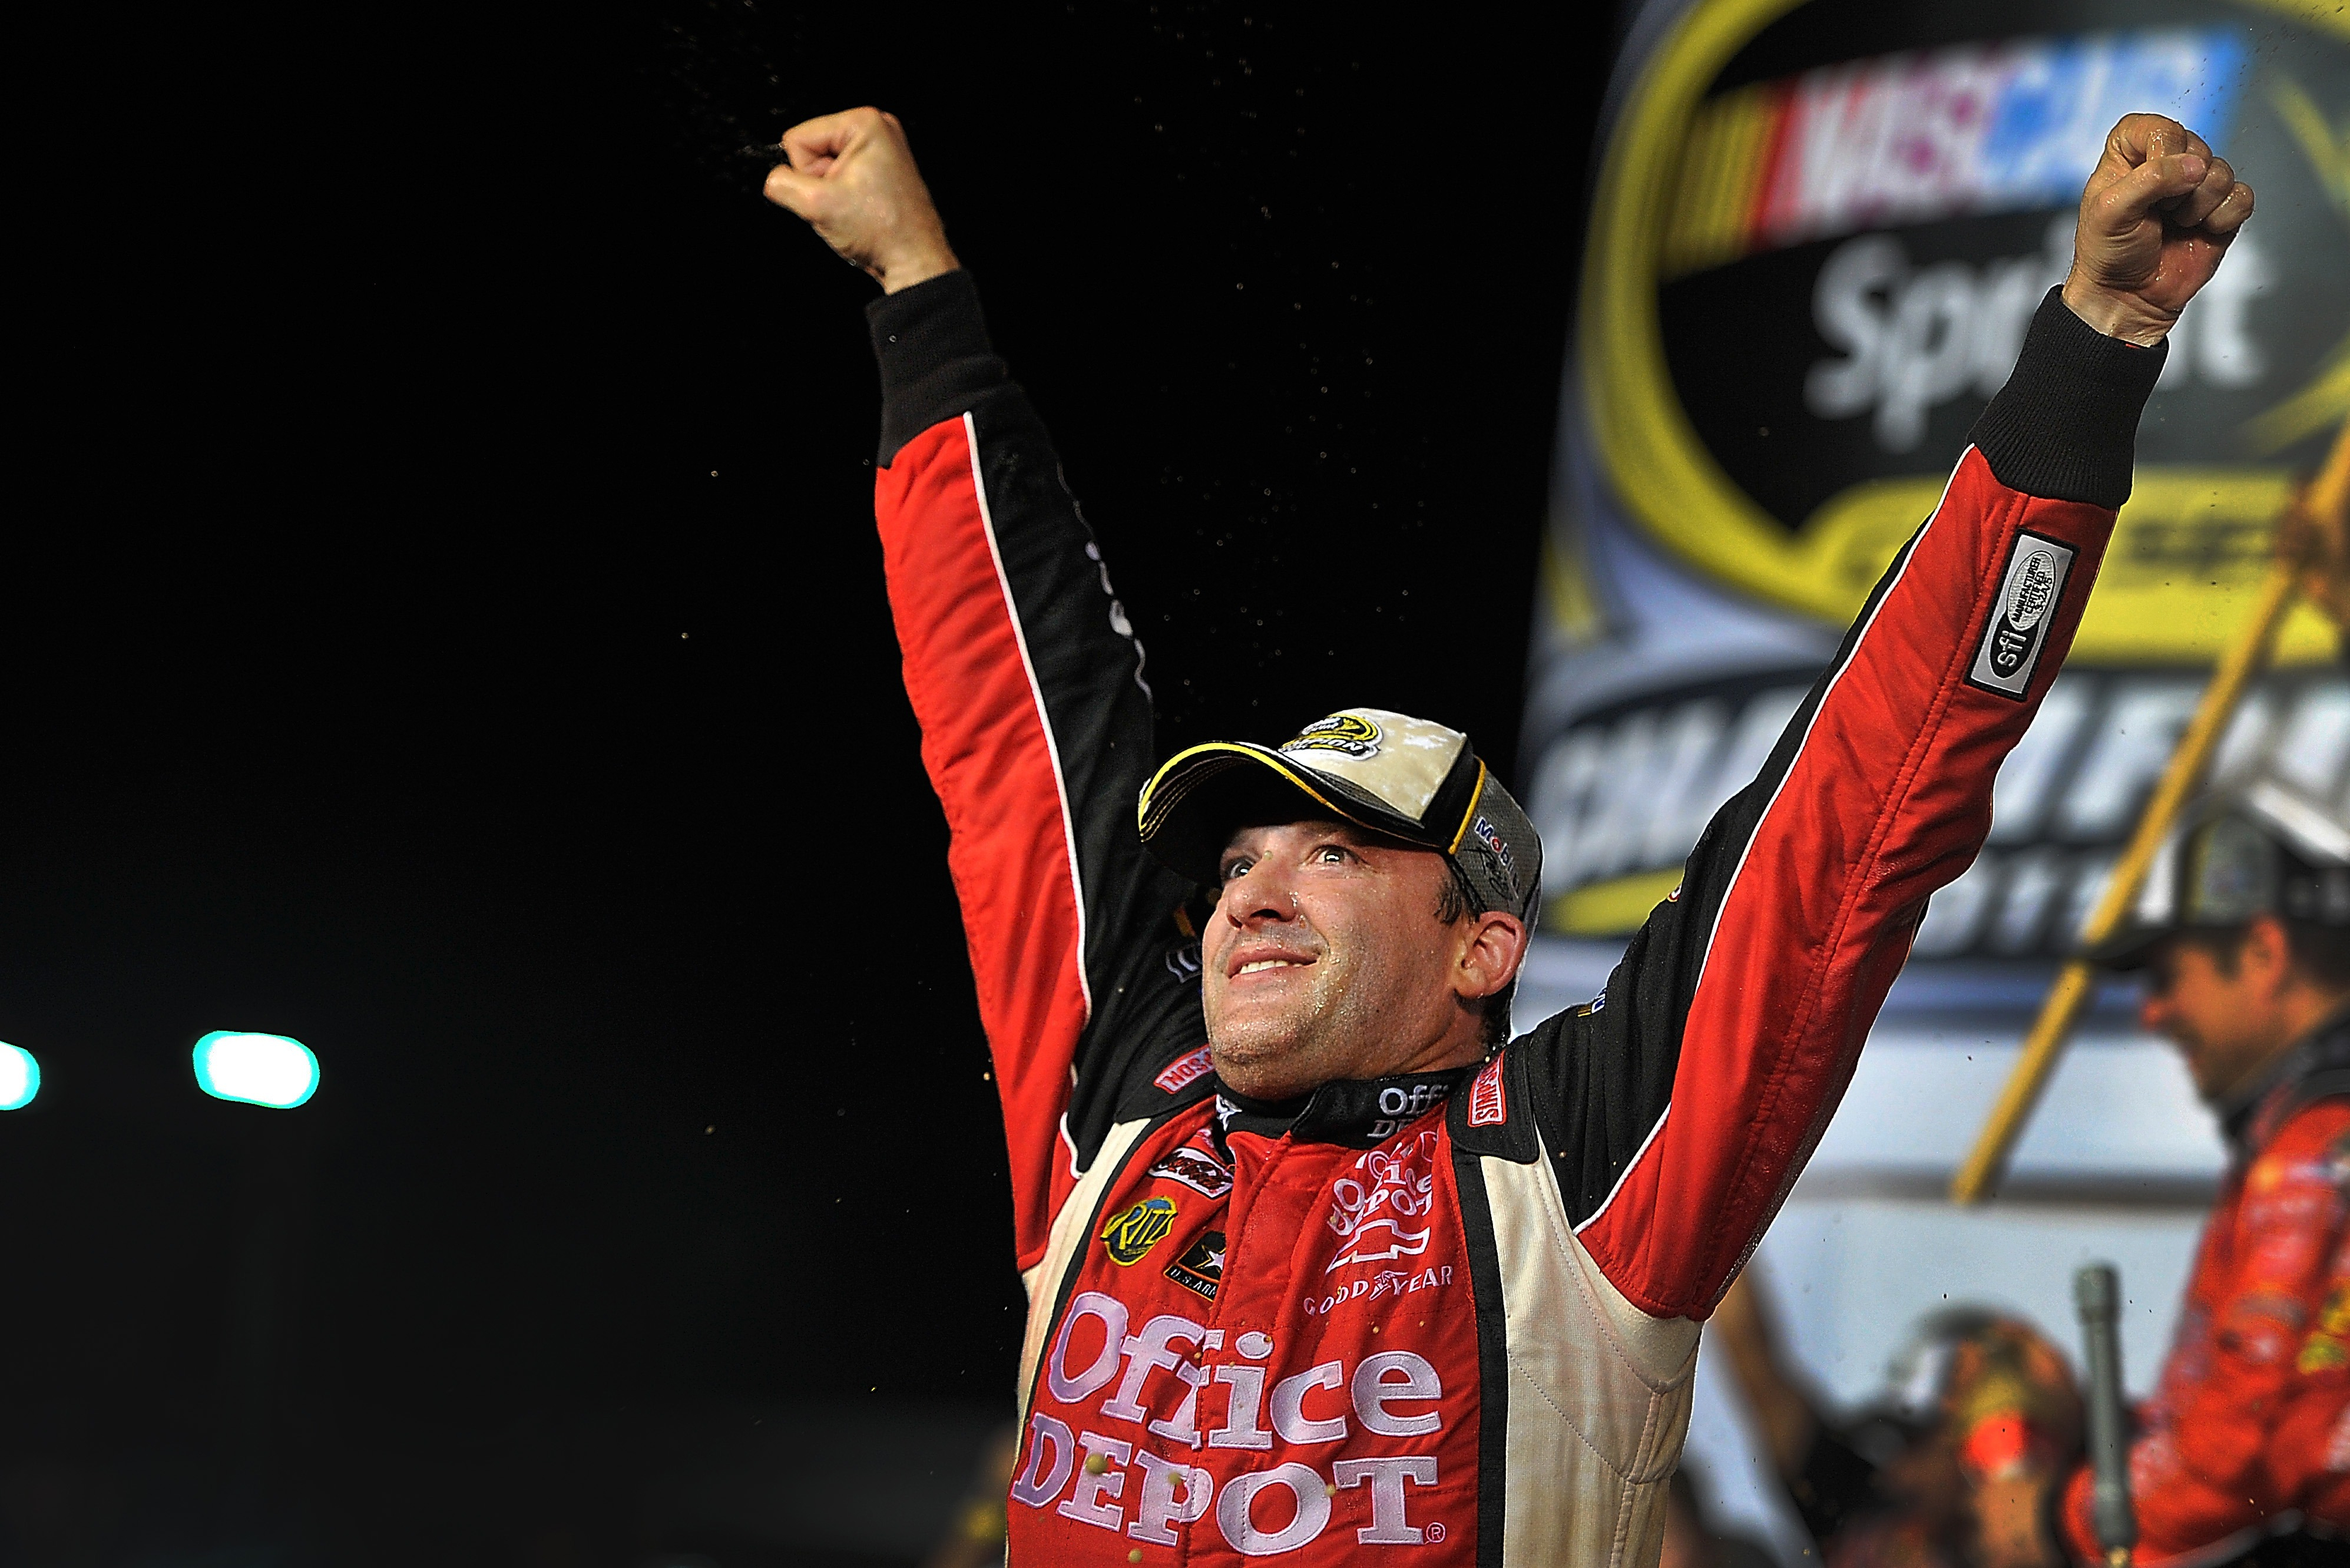 Tony Stewart won his third Cup title in 2011 after taking on team co-ownership role at SHR